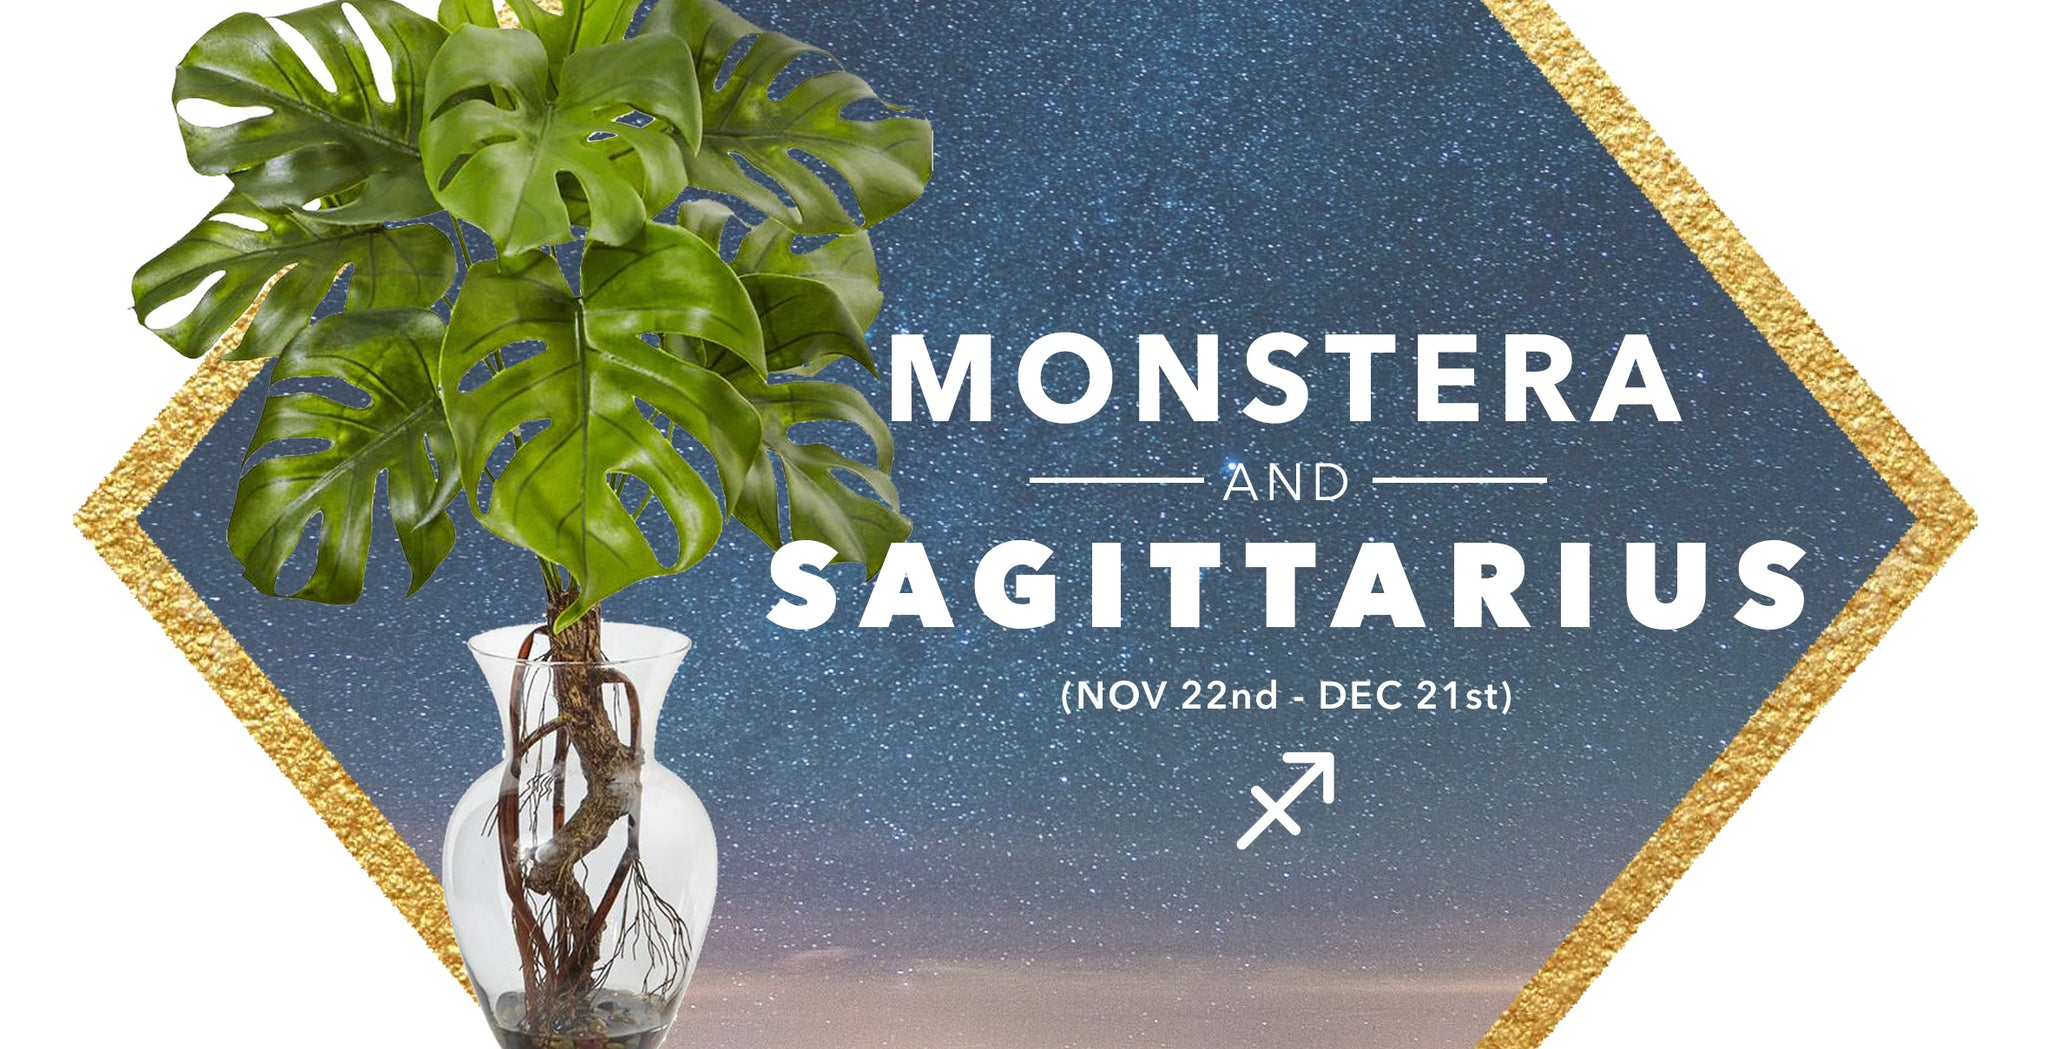 SILK MONSTERA PLANTS & SAGITTARIUS